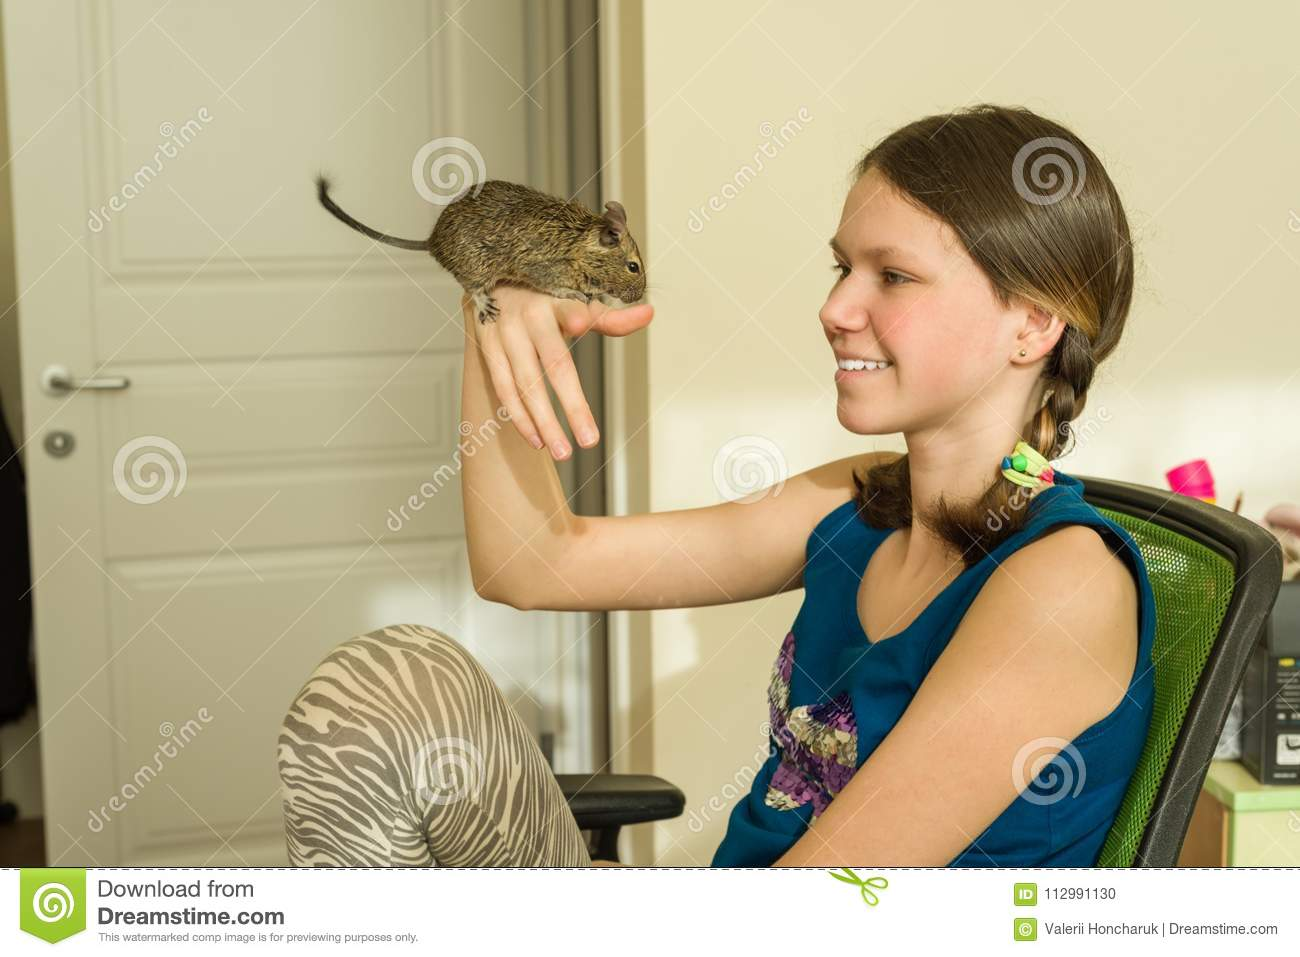 Teenage girl holding a pet on her hand - Chilean squirrel degus